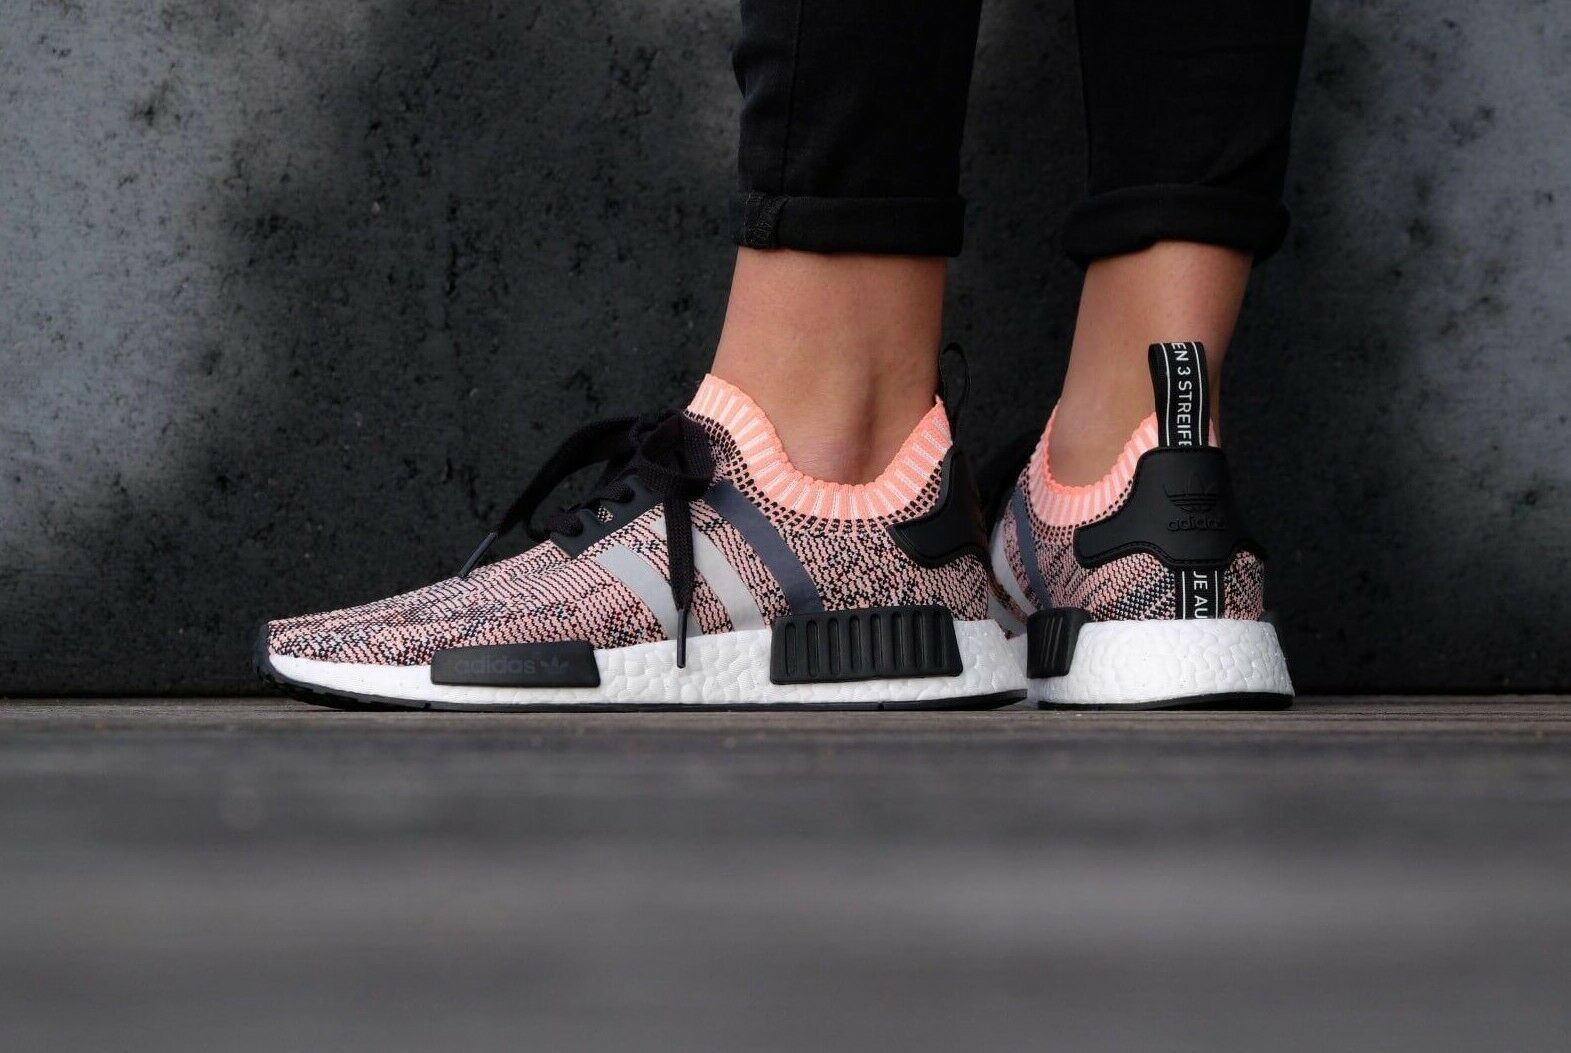 info for c00cd bfaf7 ADIDAS NMD R1 Primeknit TRIcoloreE TRIcoloreE TRIcoloreE Glitch rosa  Salmone BB2361 Nuovo Regno Unito TAGLIE 4 5 6 7cf1b0